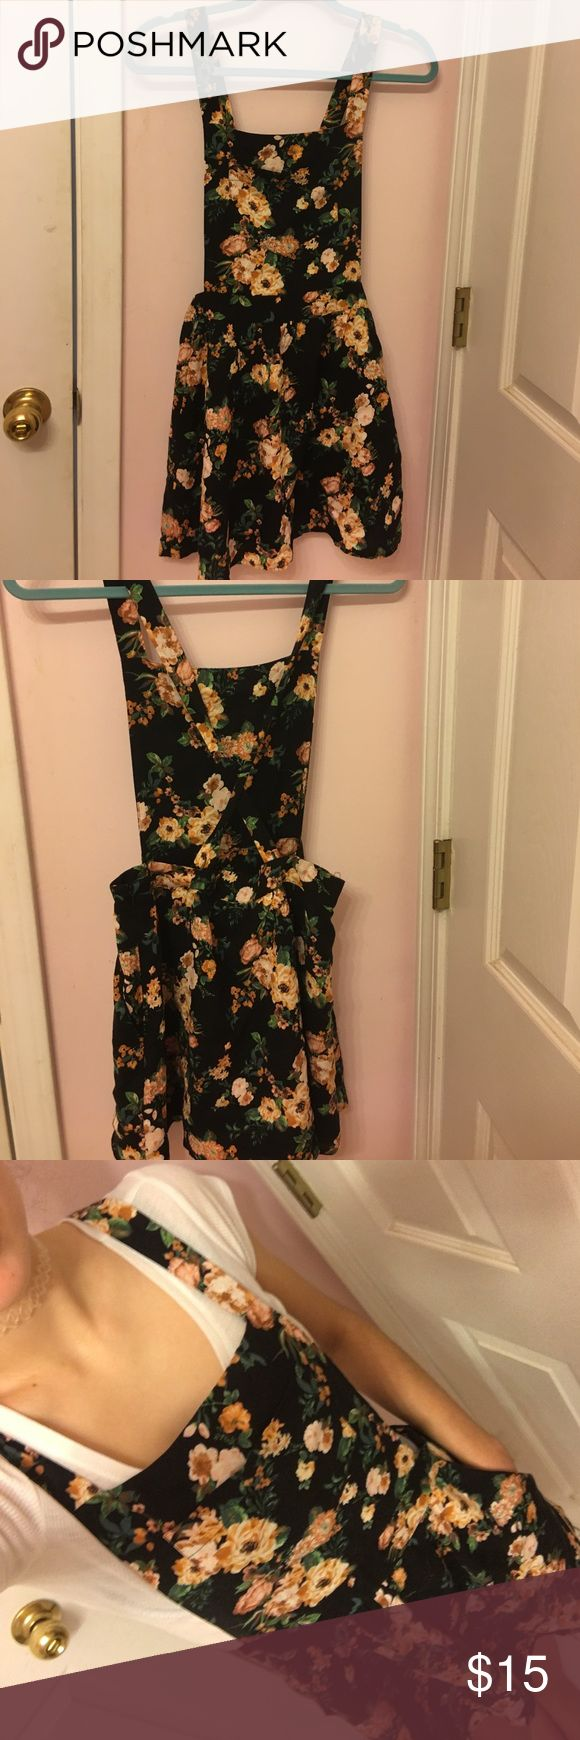 Floral Overall Dress Floral Overall dress with adjustable button straps, front & side pockets details. Like new, worn once! Forever 21 Dresses